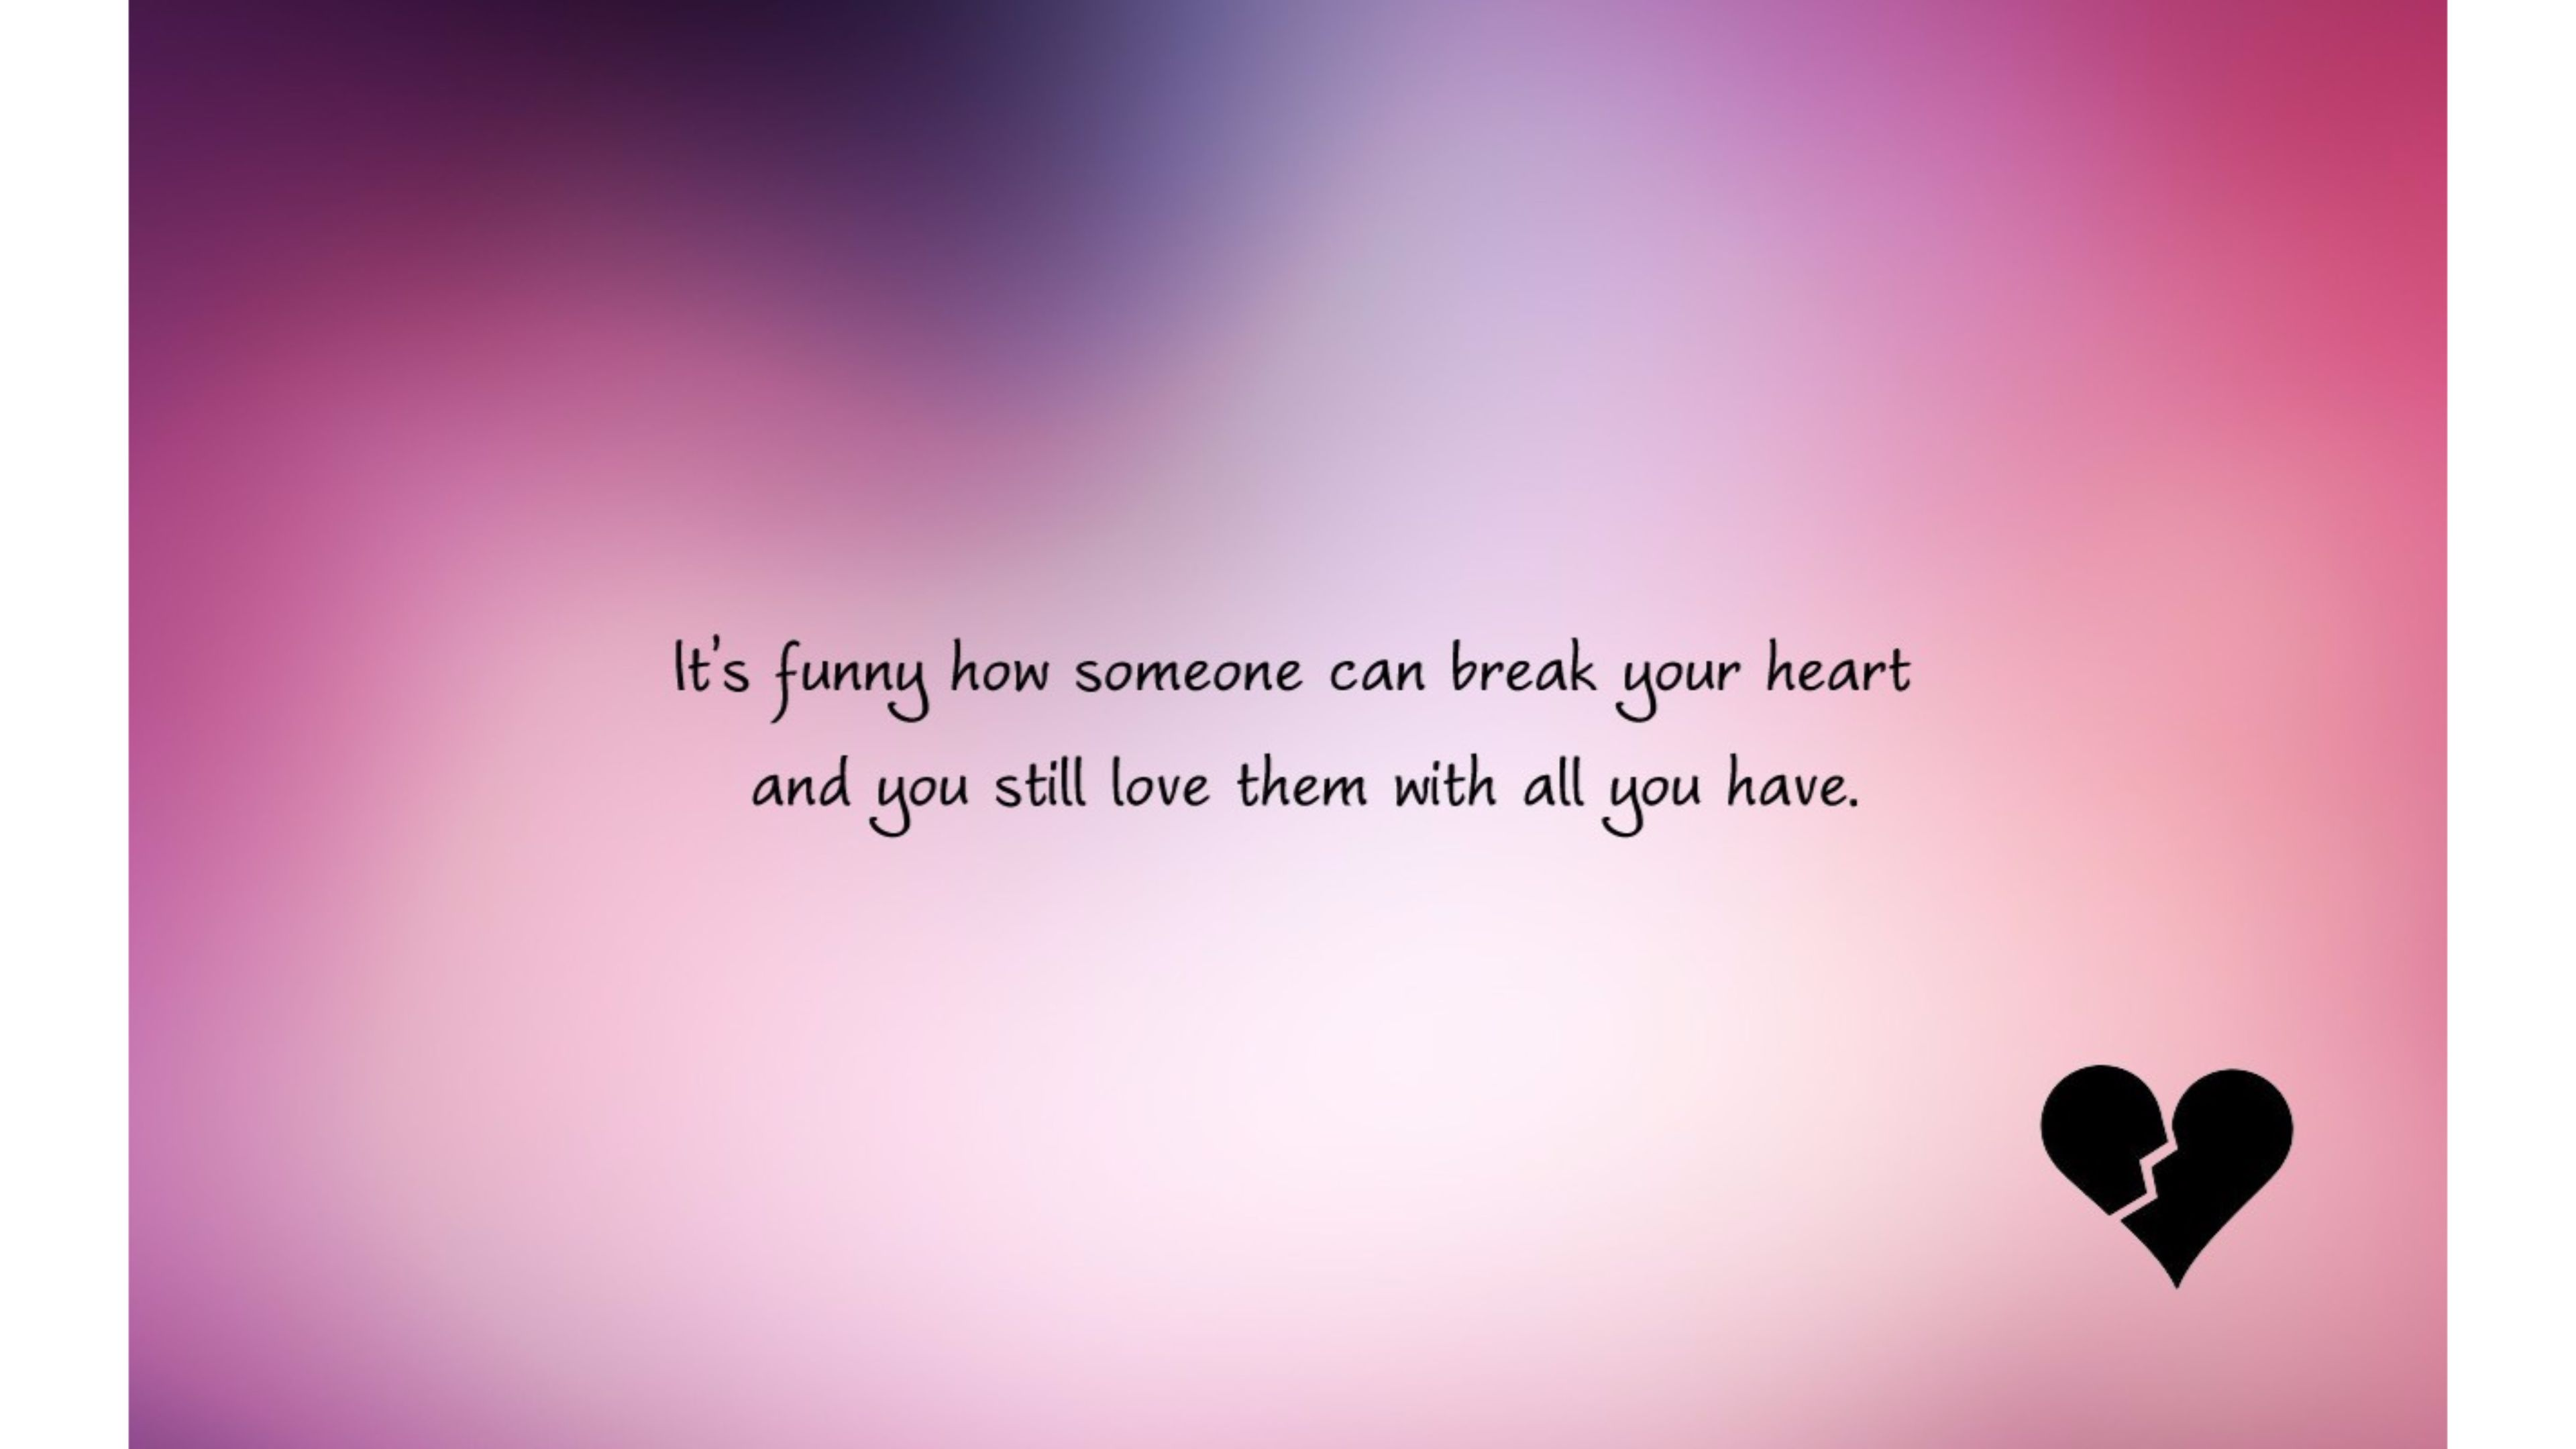 Real Love Quotes Wallpaper : true wallpapers, photos and desktop backgrounds up to 8K ...